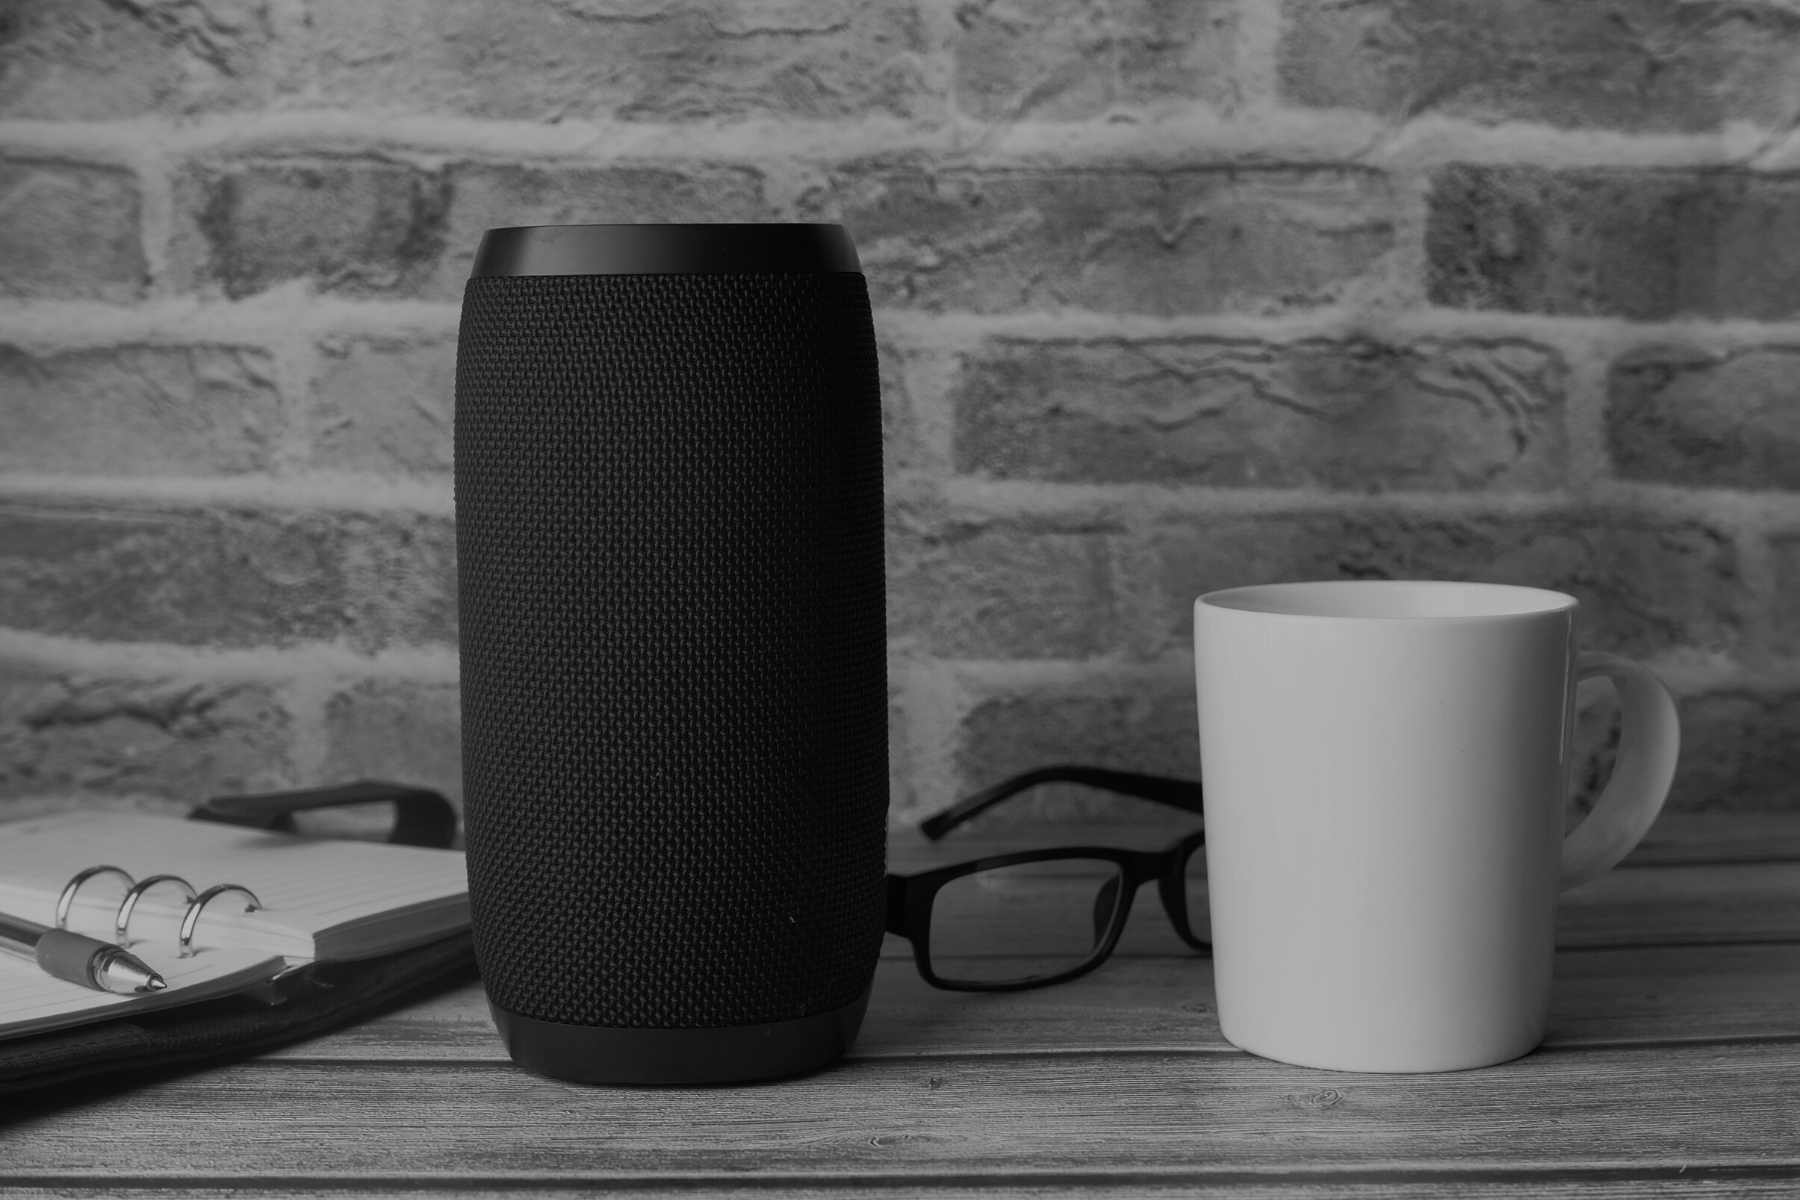 Your Amazon Alexa Is a Spy